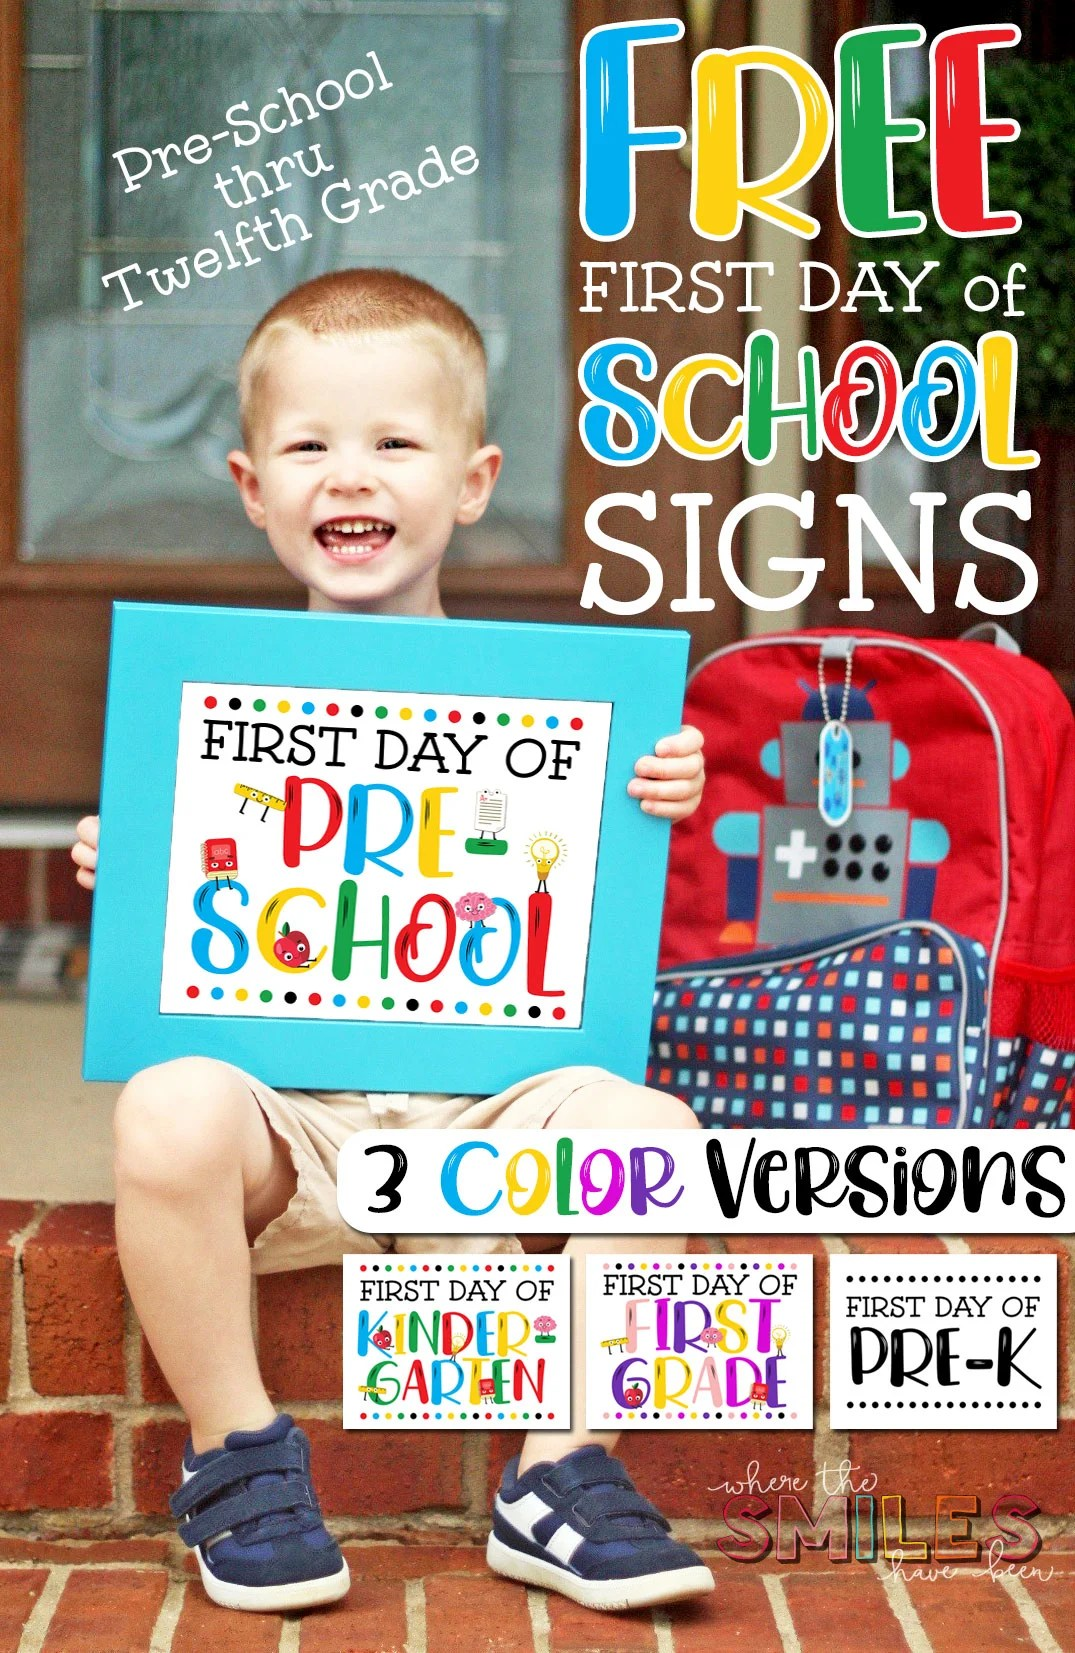 photograph relating to Free Printable First Day of School Signs called Cost-free Initially Working day of University Indicator Printables - 3 Colour Models!